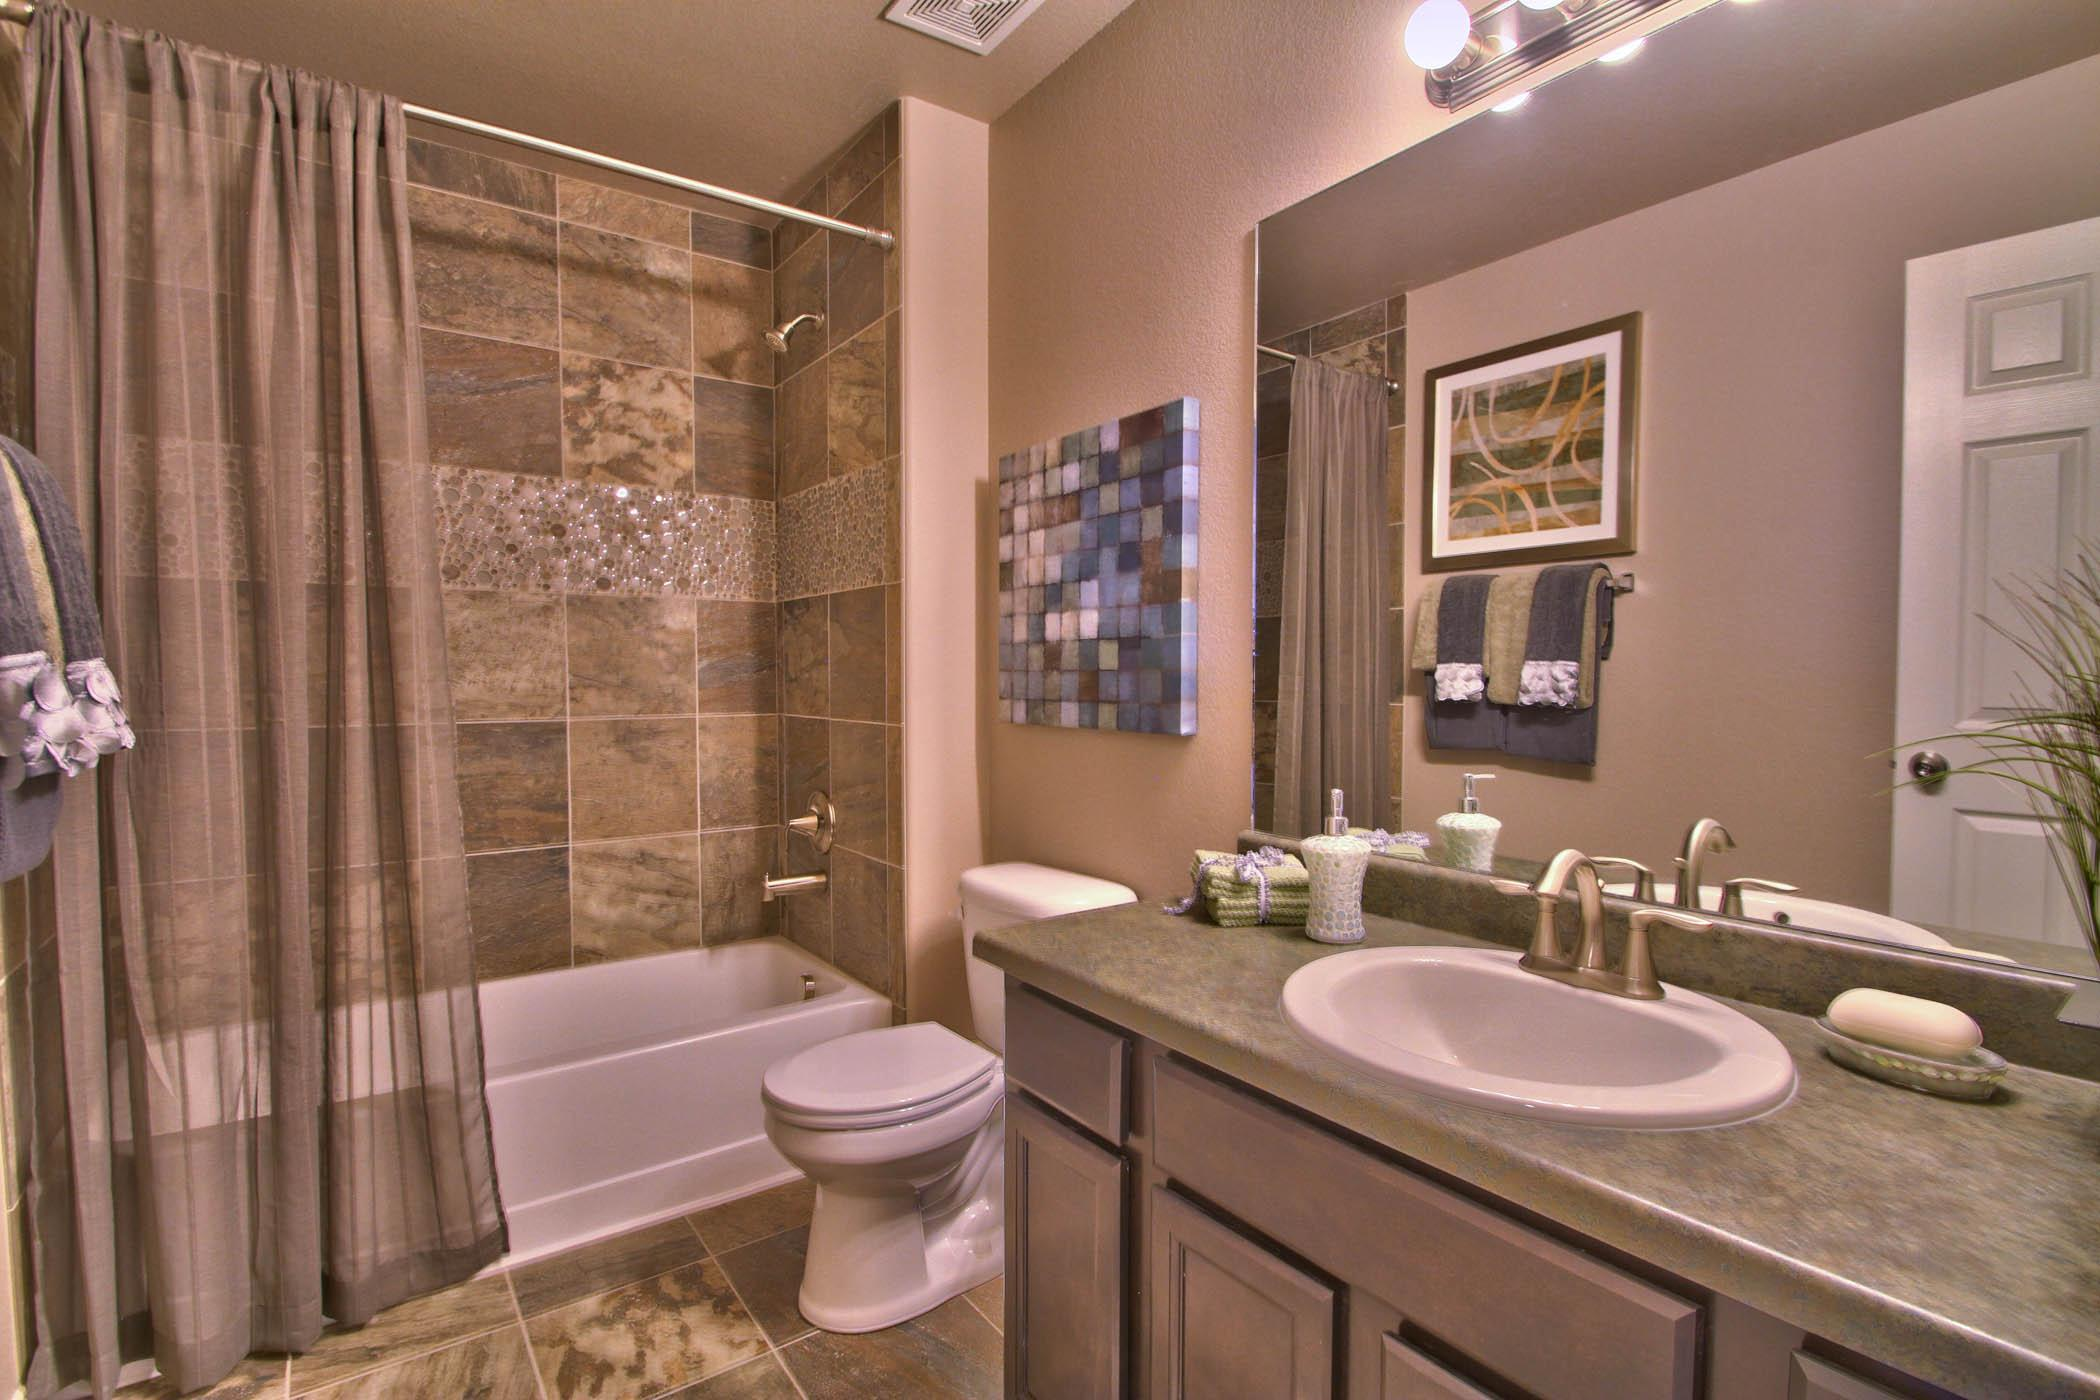 Bathroom featured in the Pikes Peak - Main Level Master (Finished Basement) By Reunion Homes